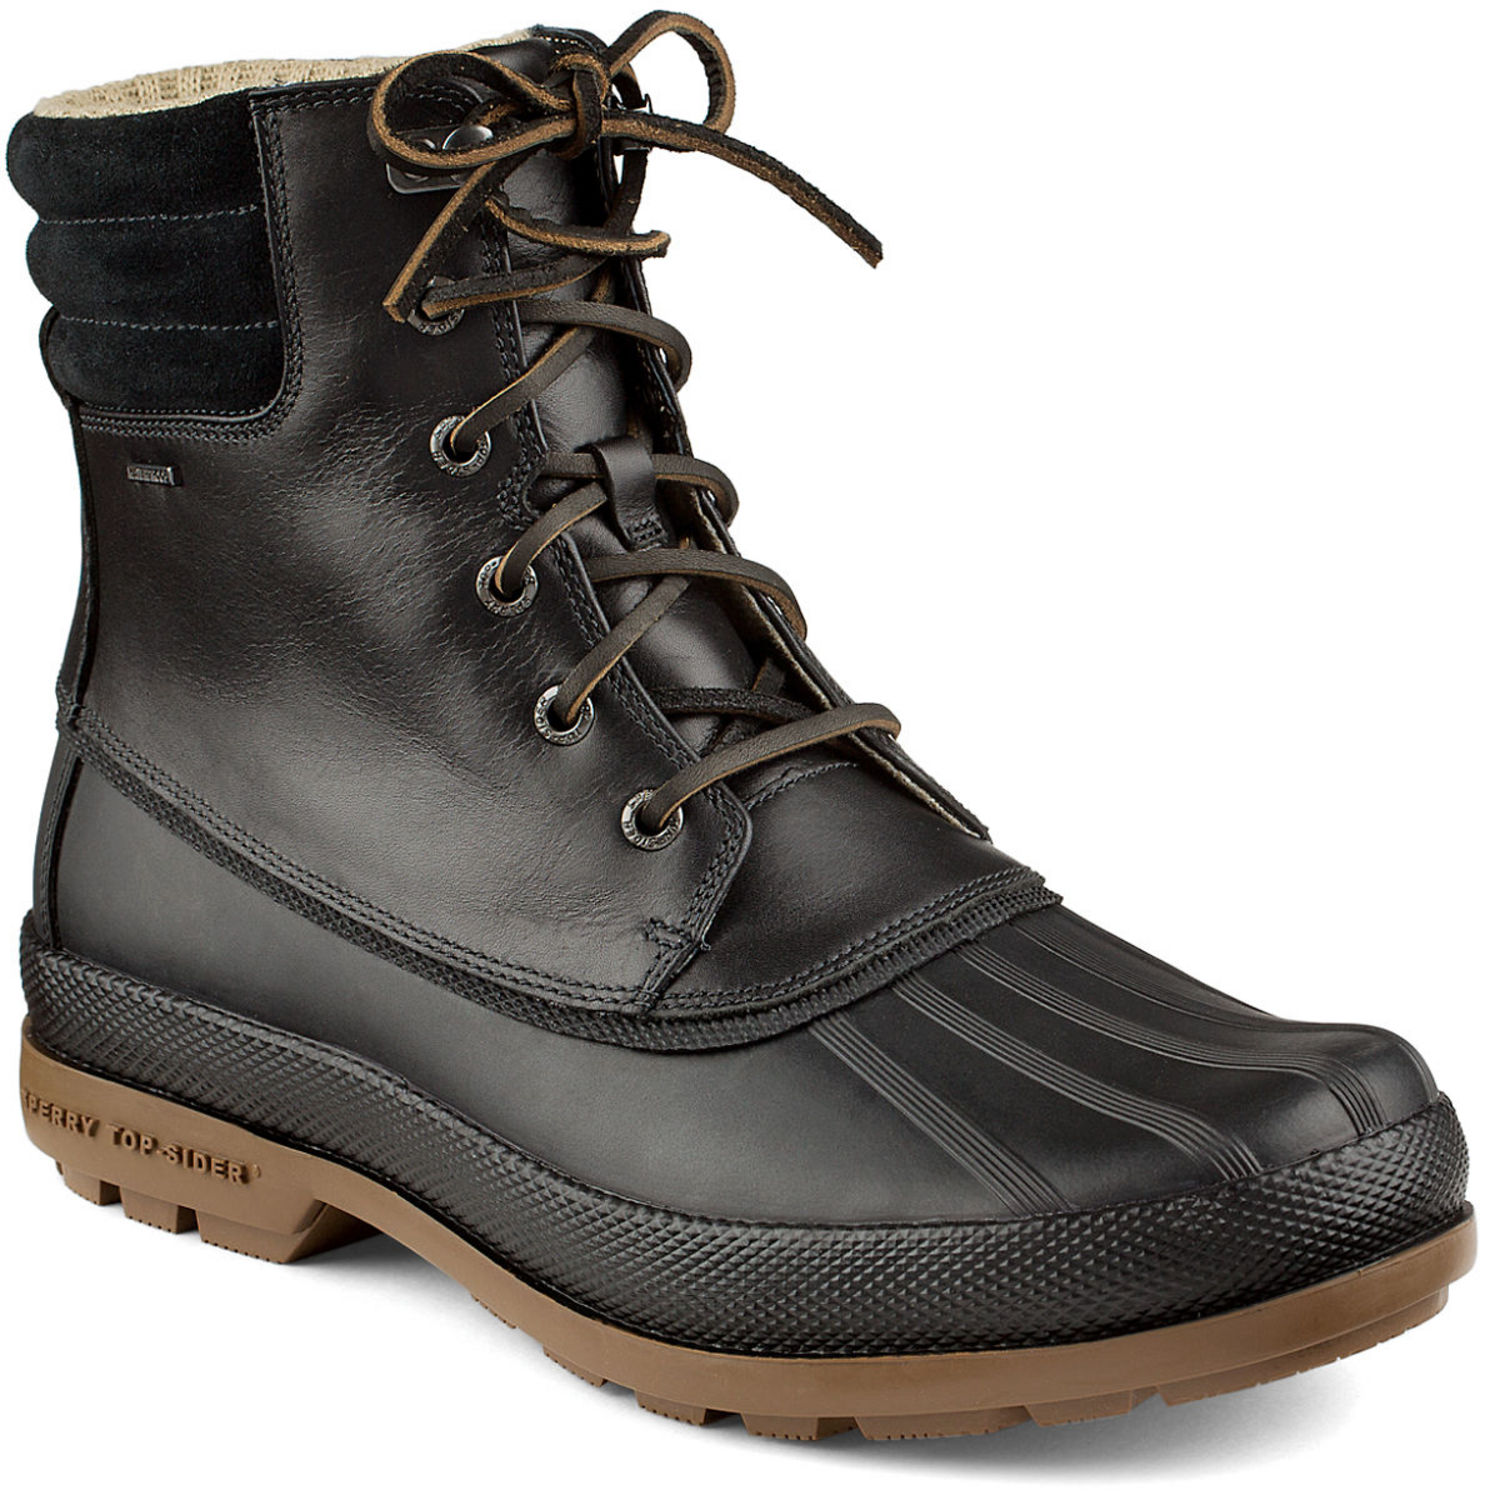 cold bay men Buy sperry top-sider men's black cold bay boots with vibram arctic grip  similar products also available sale now on.